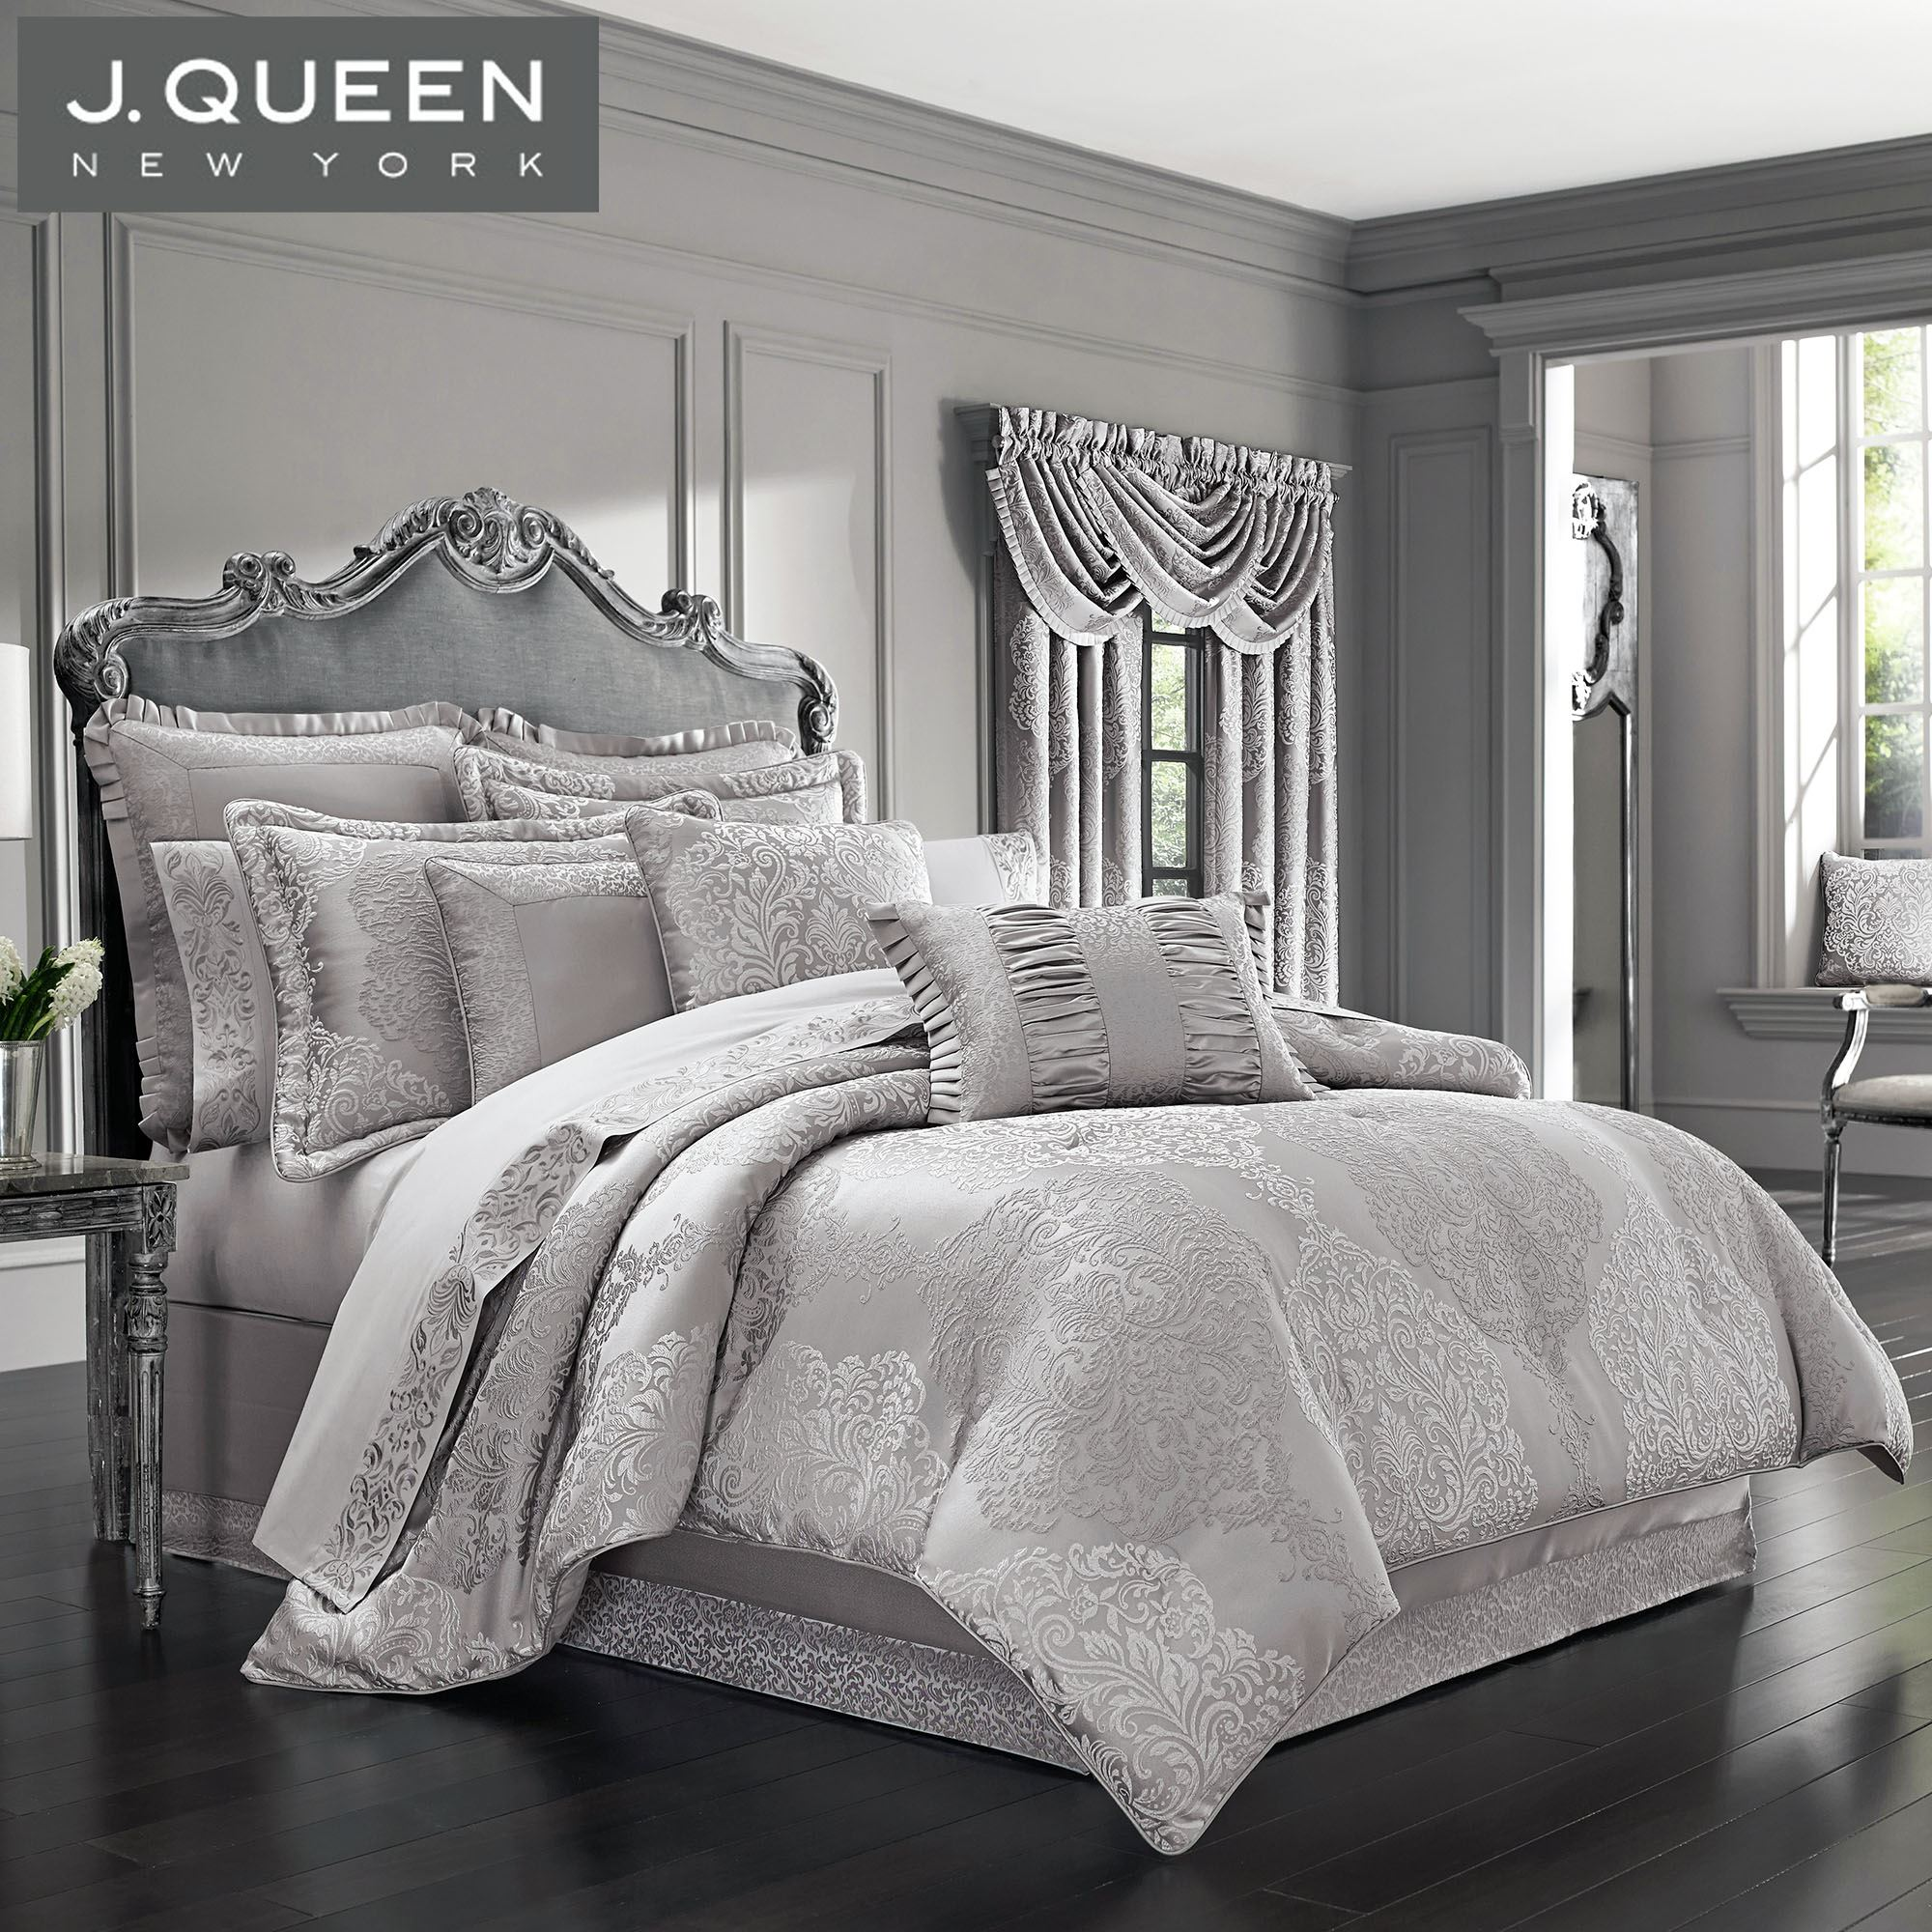 La Scala Silver Medallion Comforter Bedding By J Queen New